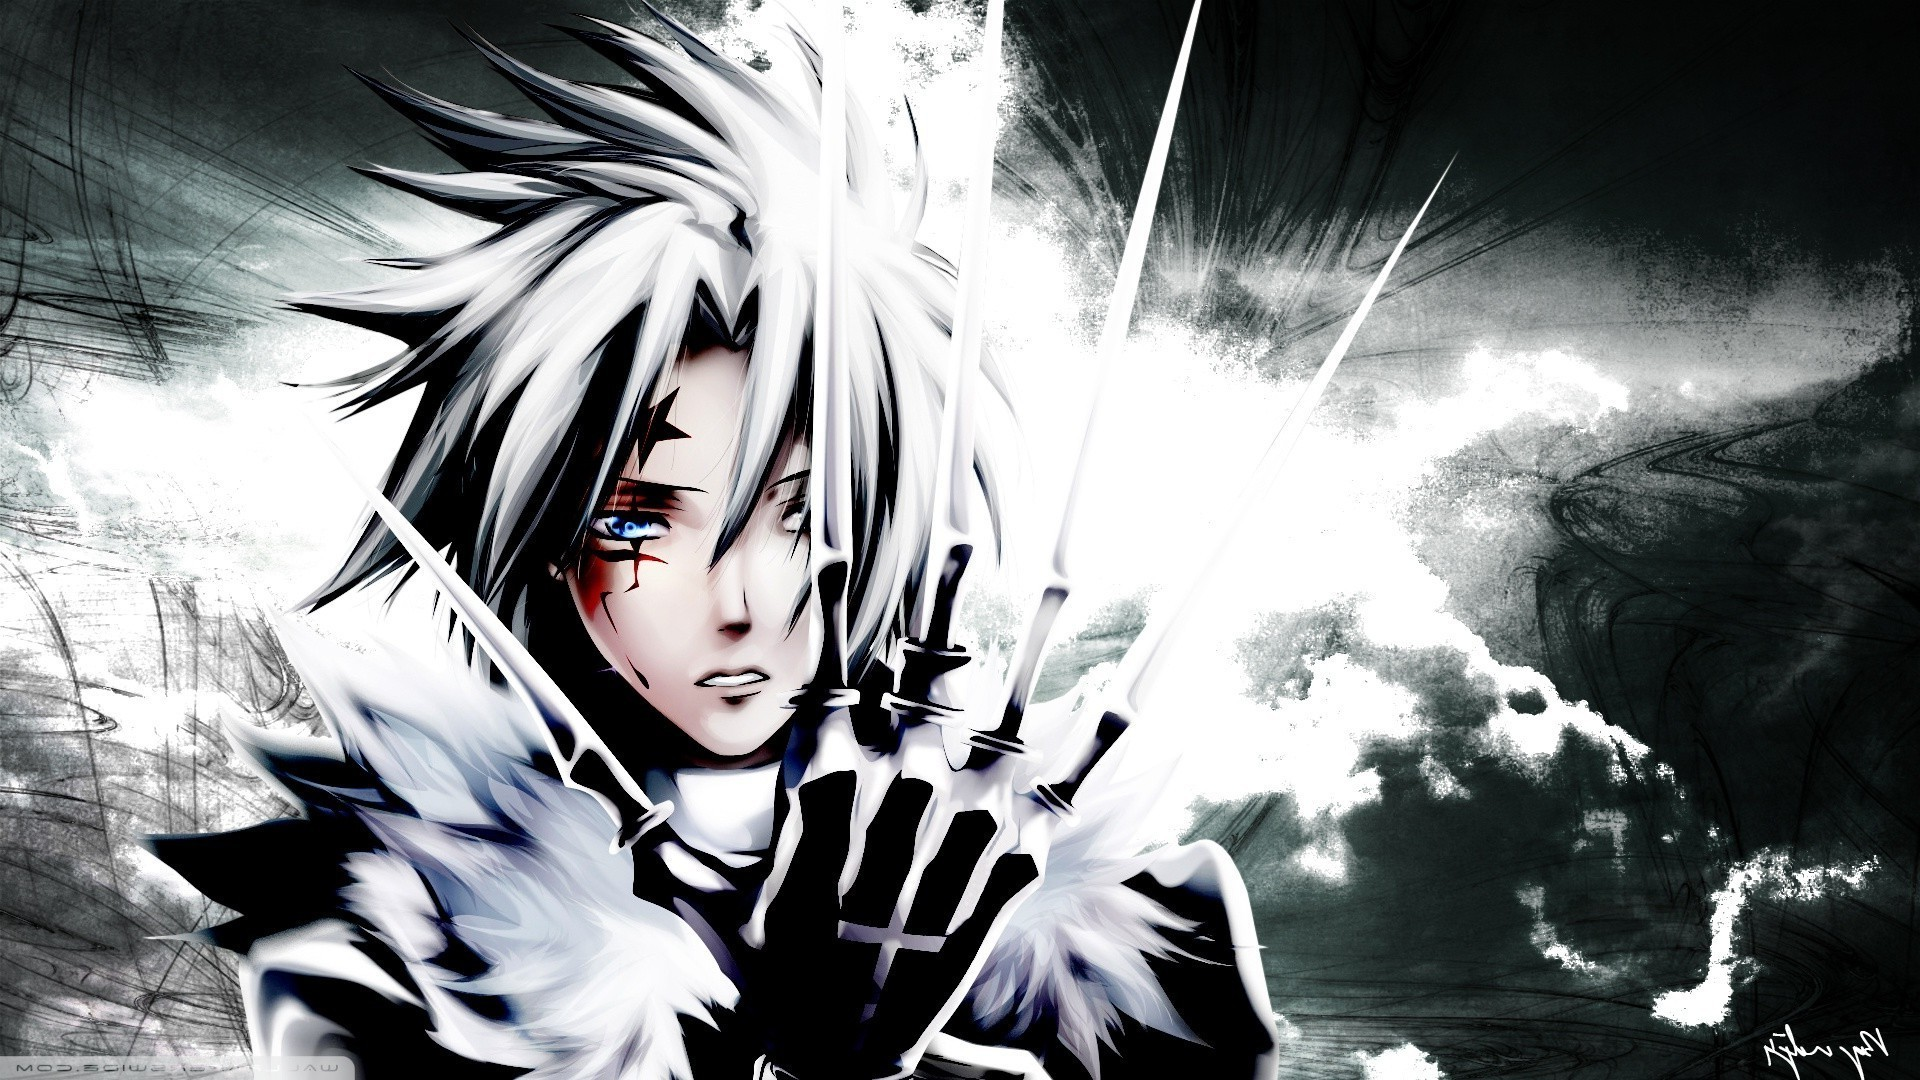 Epic Anime Wallpaper (57+ images)